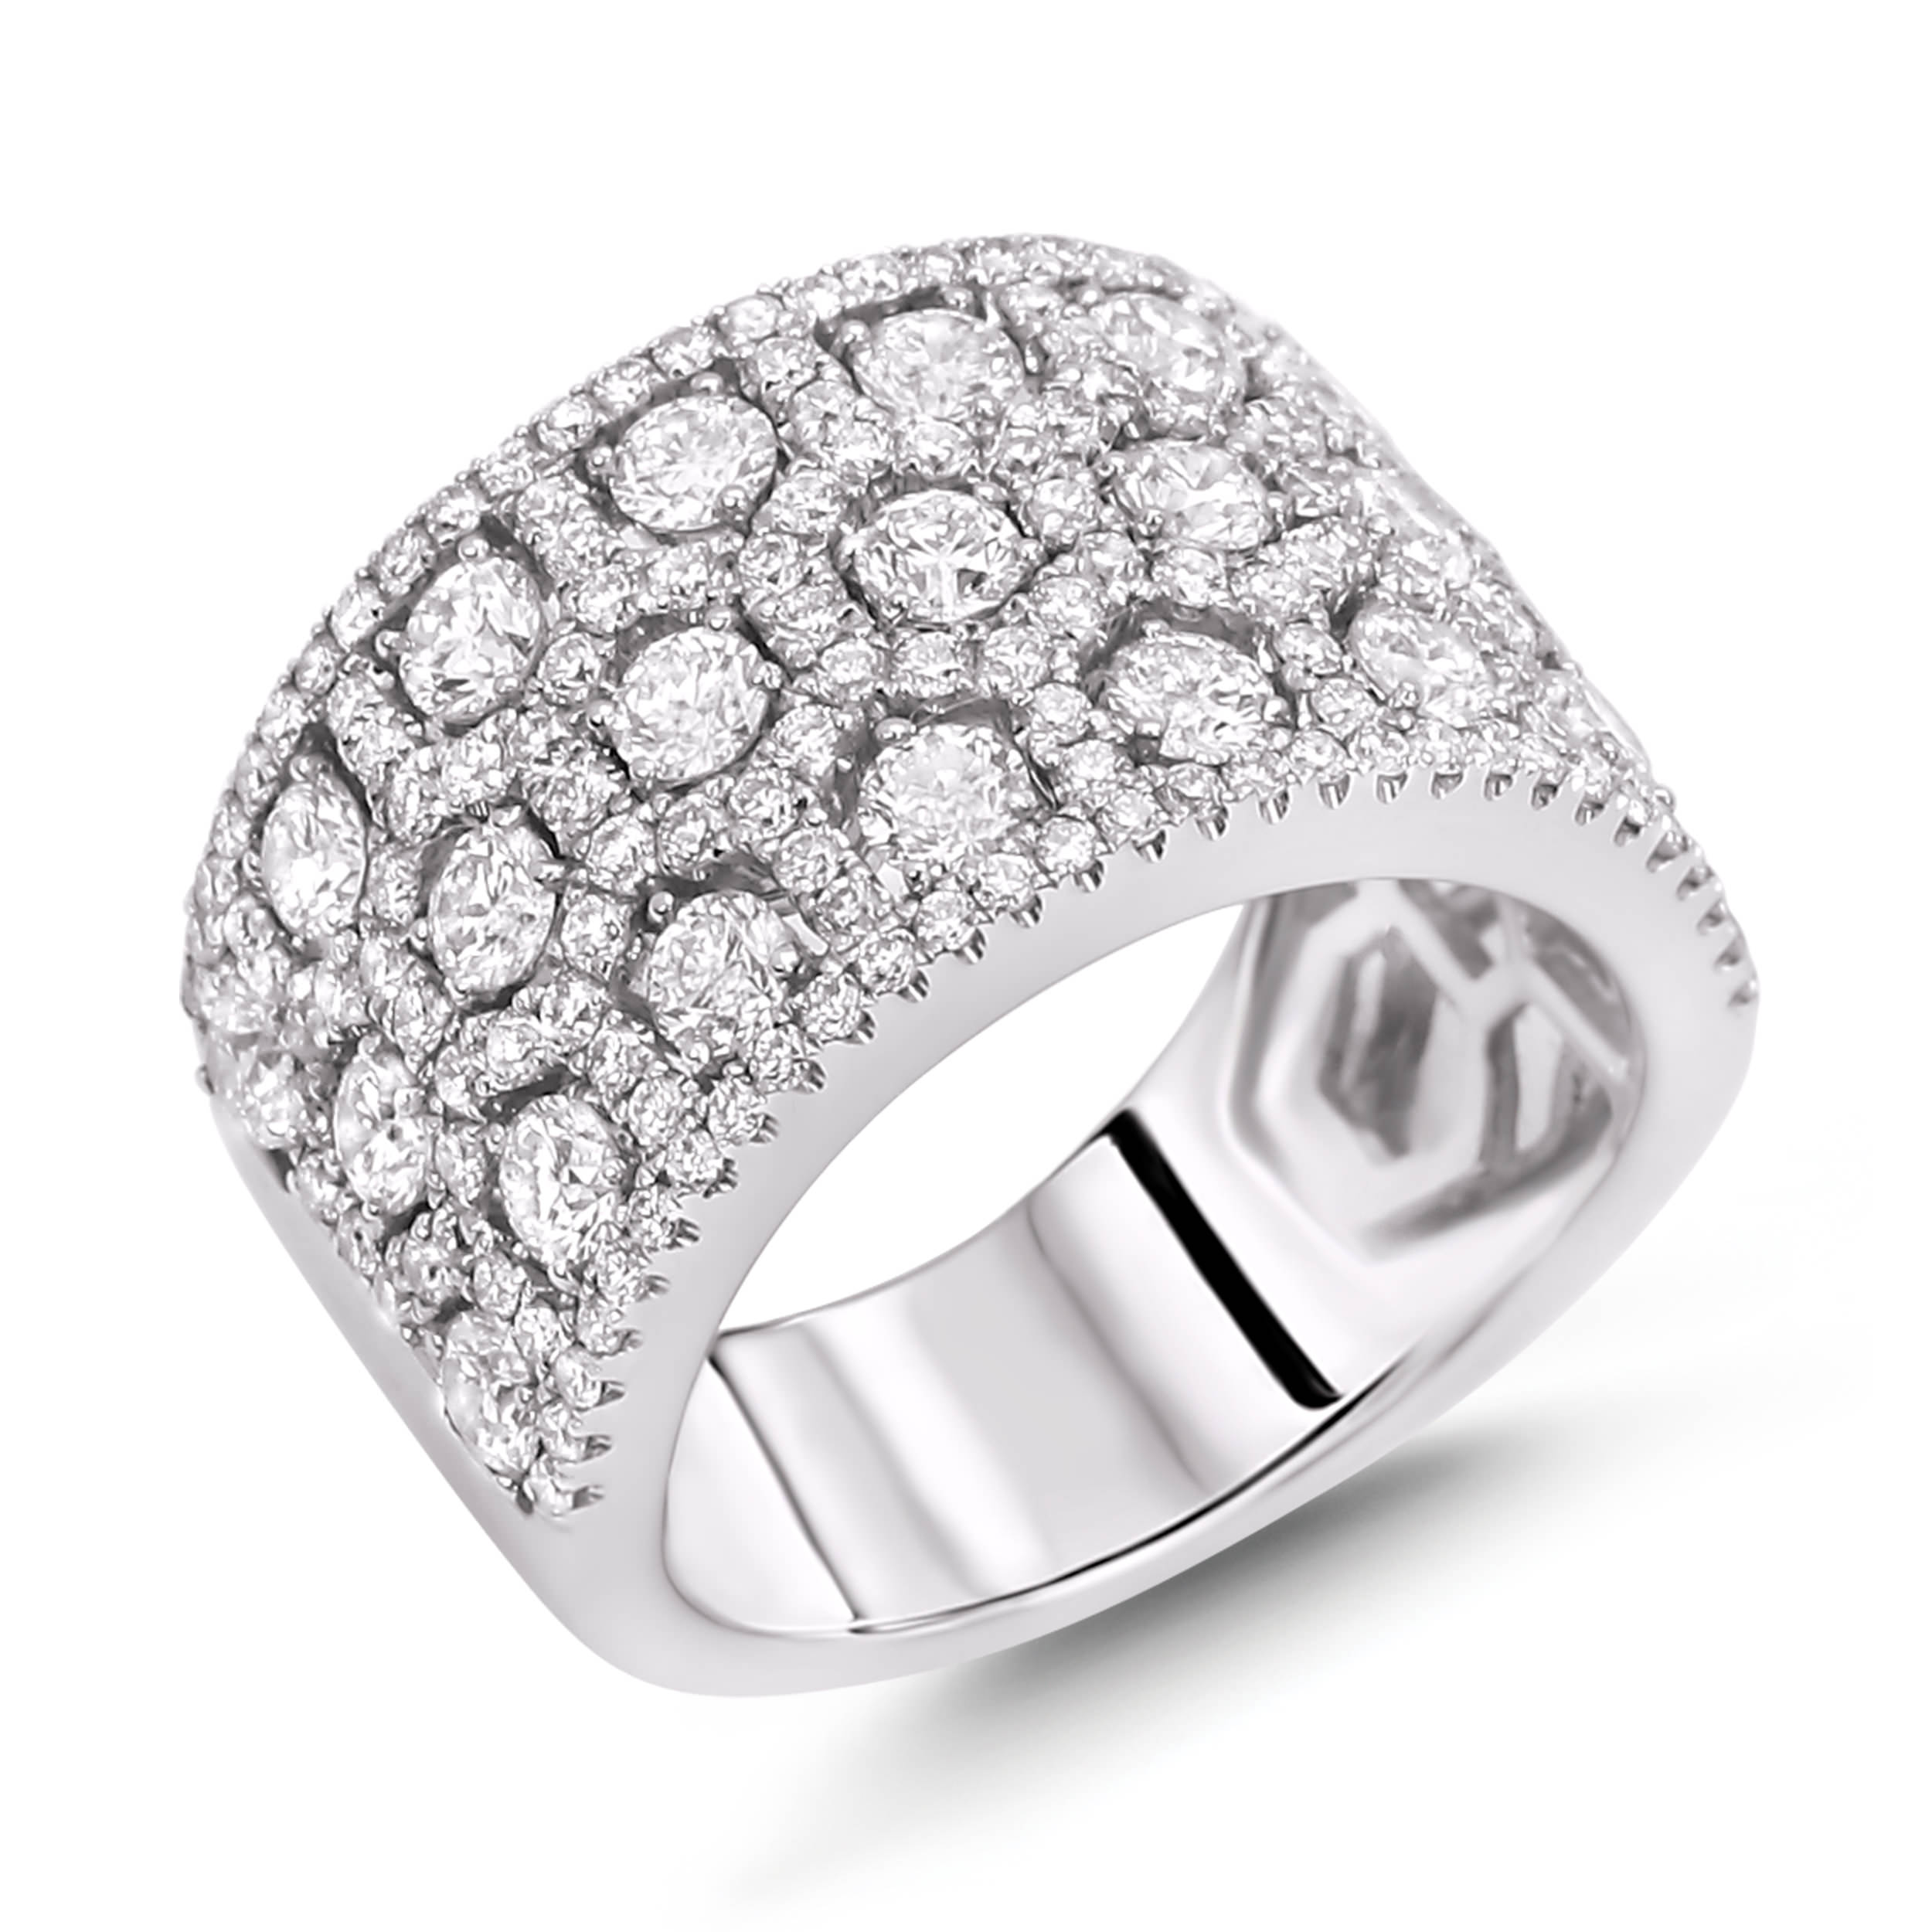 ip miabella carat eternity gold com in t rings w ring walmart white anniversary jewellery diamond